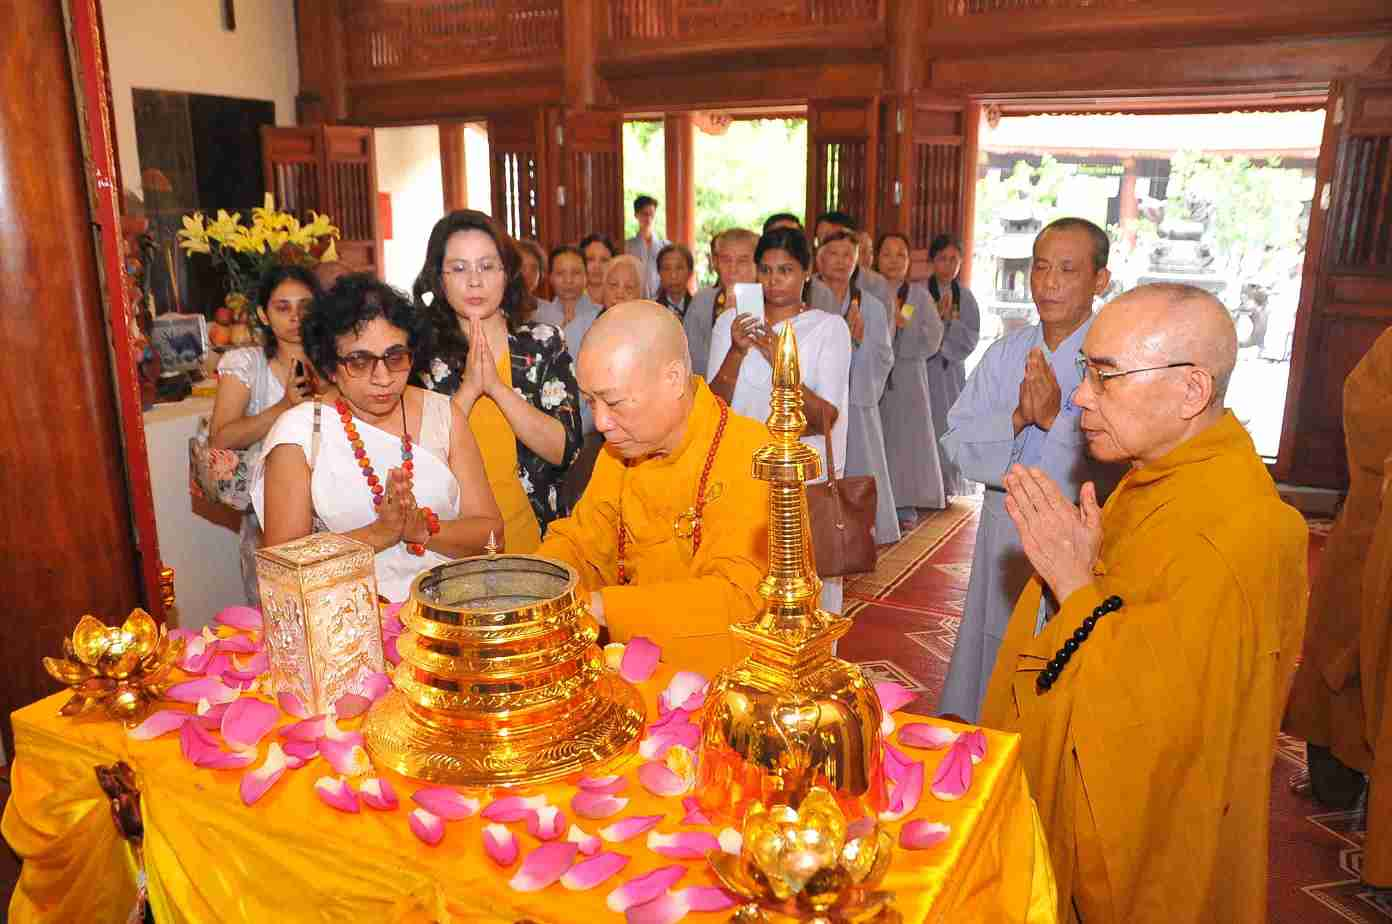 Image 02- Meritorious rituals by the Vietnamese Buddhist Monks in the presence of Ambassador and the Vice Chairperson of Hoang Mai District People's Committee, in Ha Noi